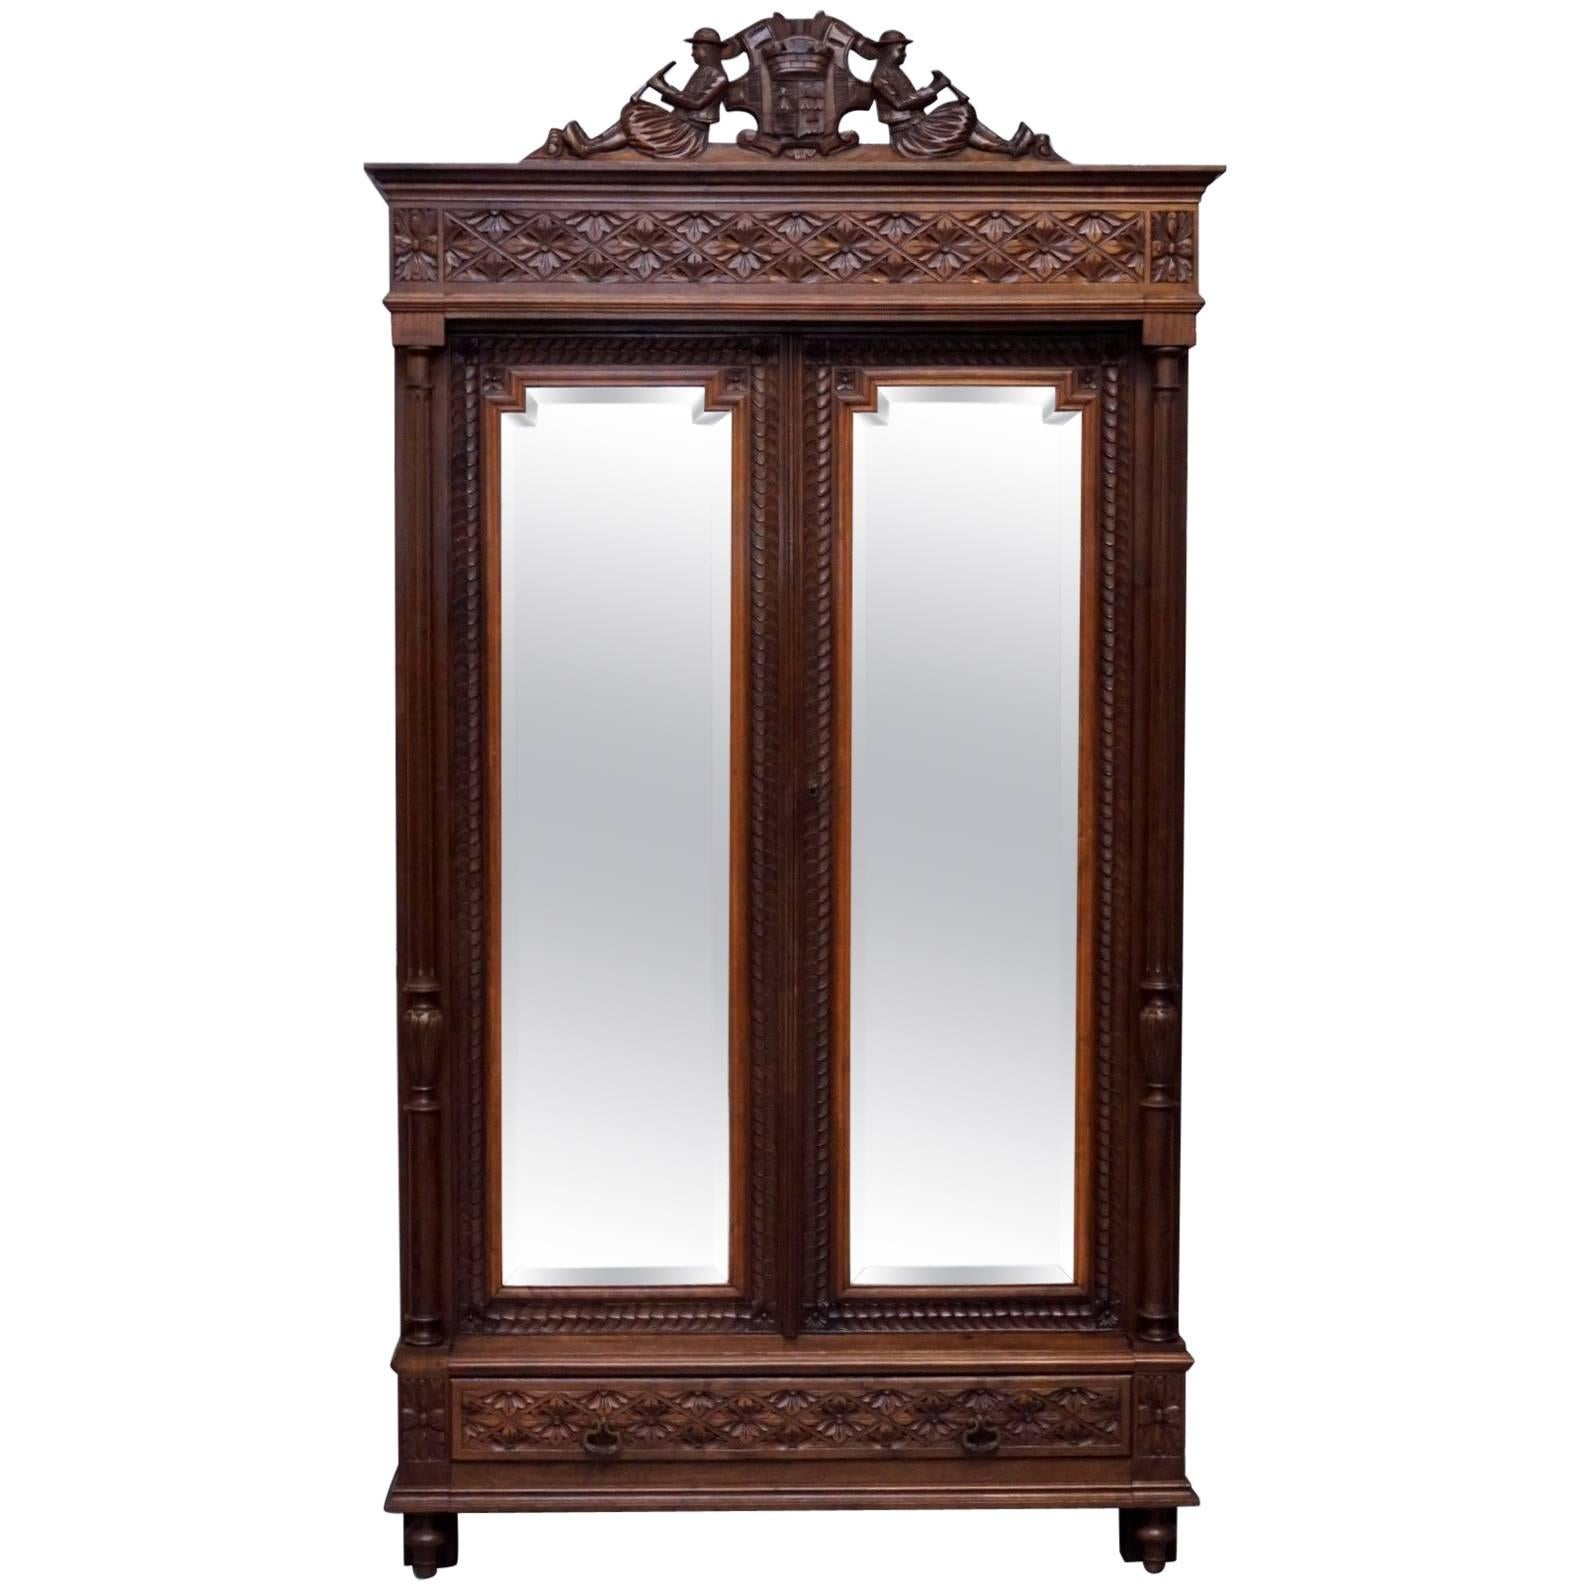 Attirant Stunning Hand Carved Wood French Country Mirrored Double Door Armoire  Wardrobe For Sale